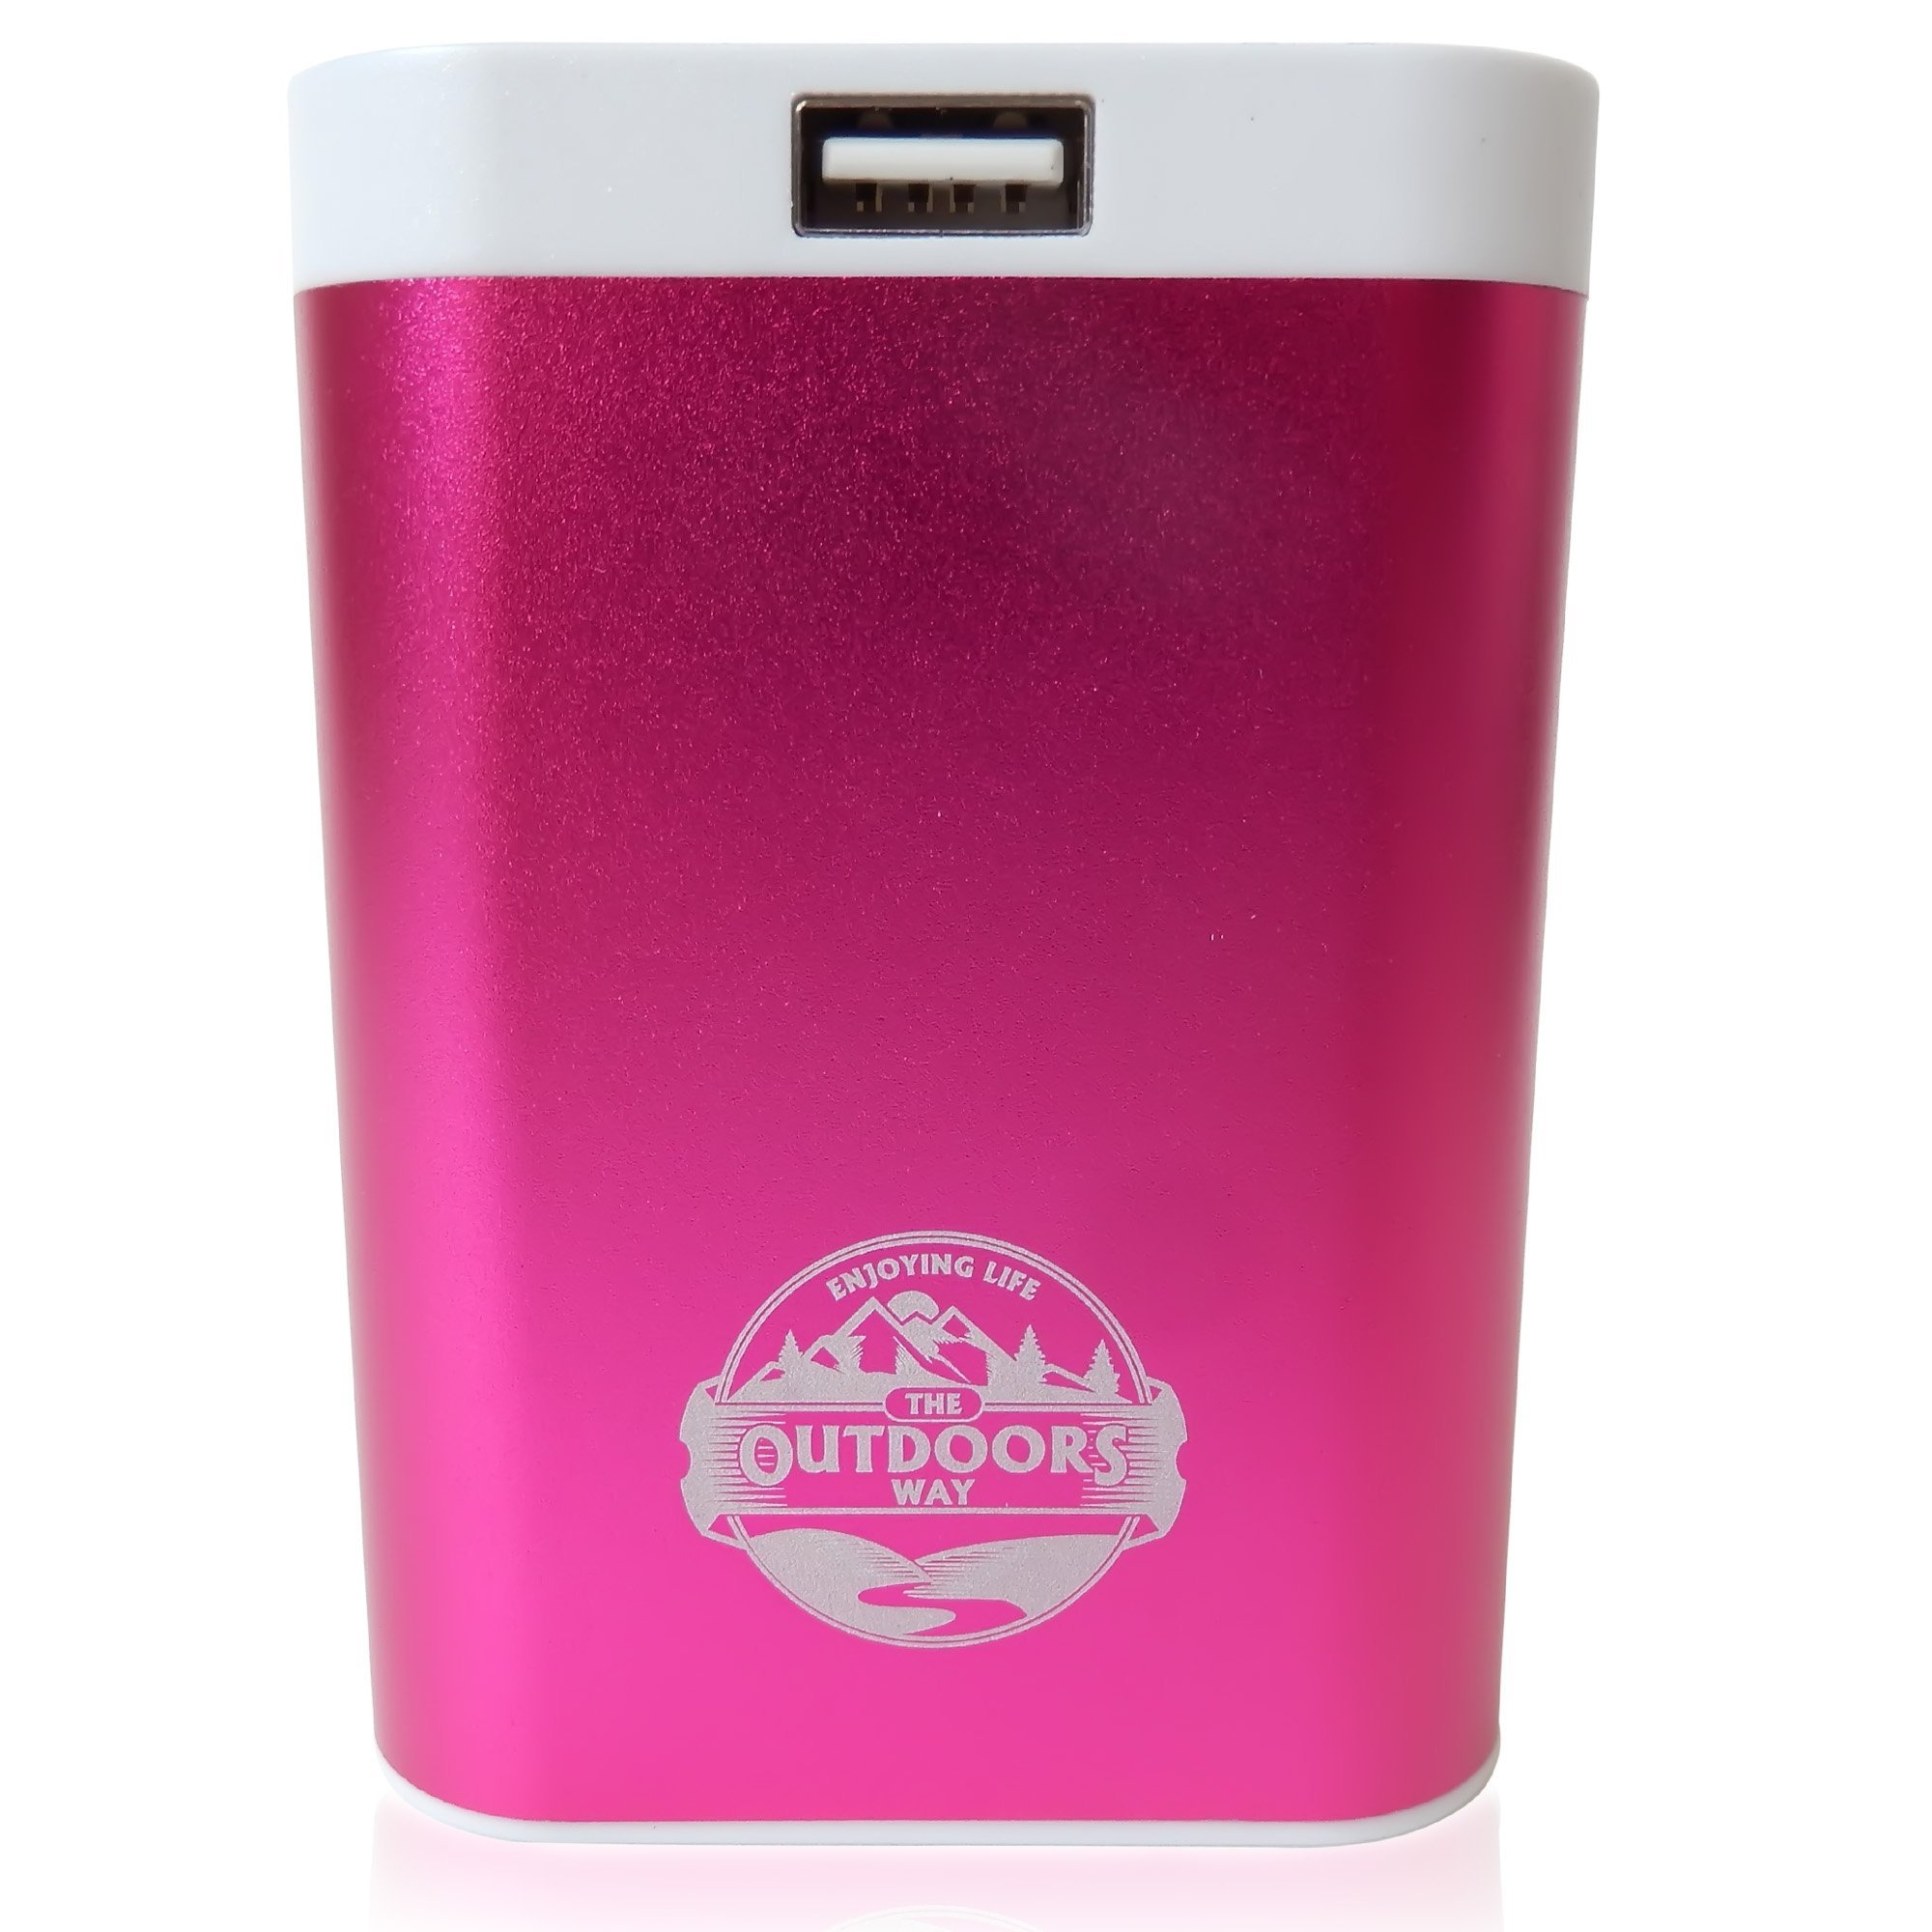 The Outdoors Way Electric Hand Warmer, Rechargeable Accessory for Hunting and Winter Sports. Handwarmer Includes Phone Charger + LED Flashlight + Carry Pouch + 2 Colors Options. by The Outdoors Way